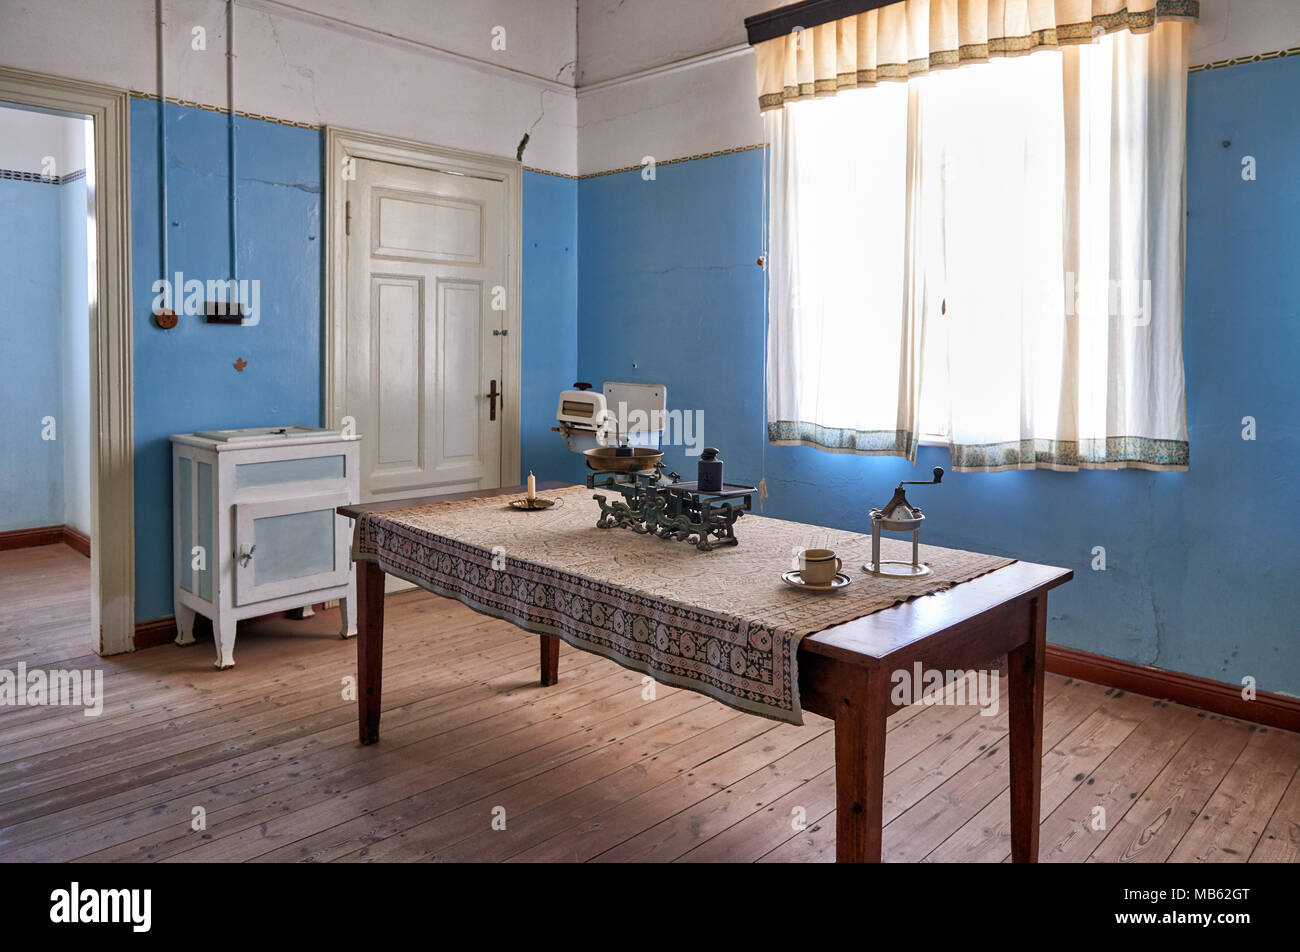 kitchen in Kolmanskop ghost town, Luderitz, Namibia, Africa - Stock Image